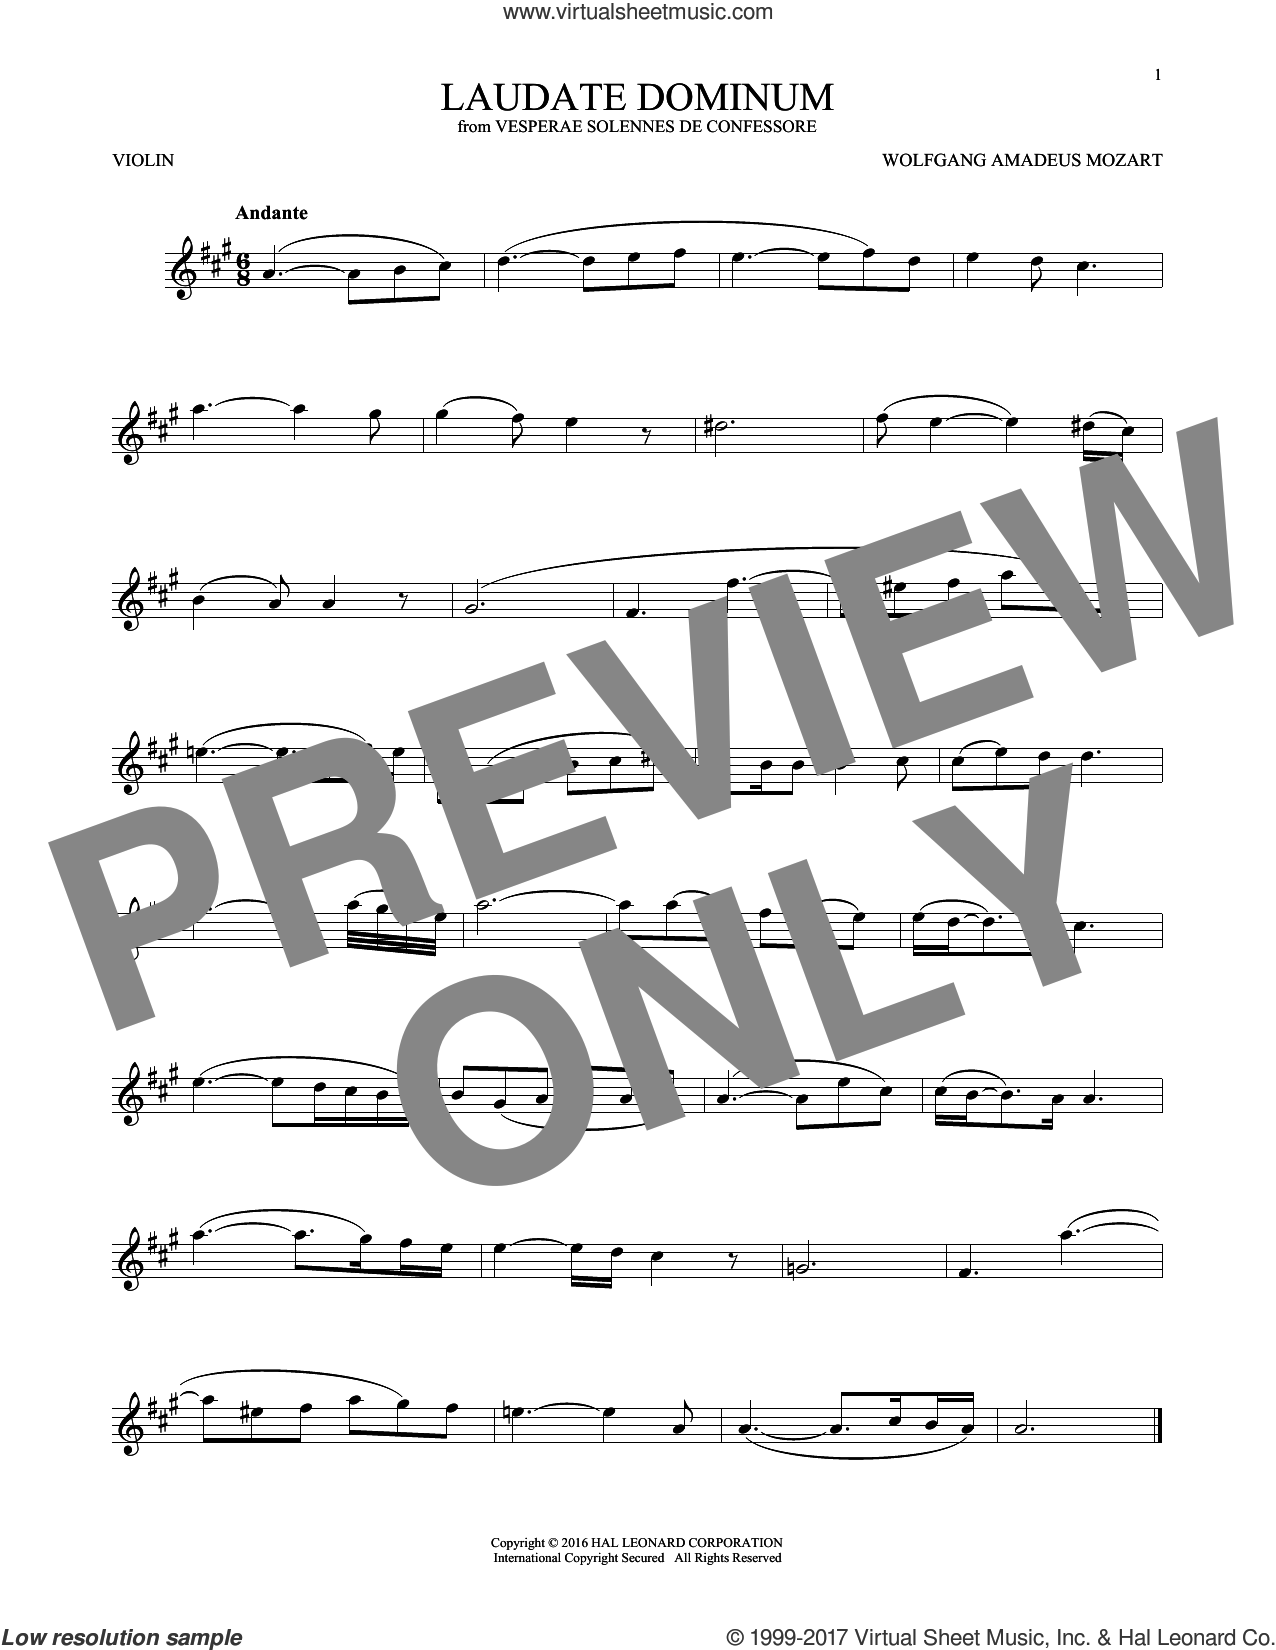 Laudate Dominum sheet music for violin solo by Wolfgang Amadeus Mozart, classical score, intermediate skill level